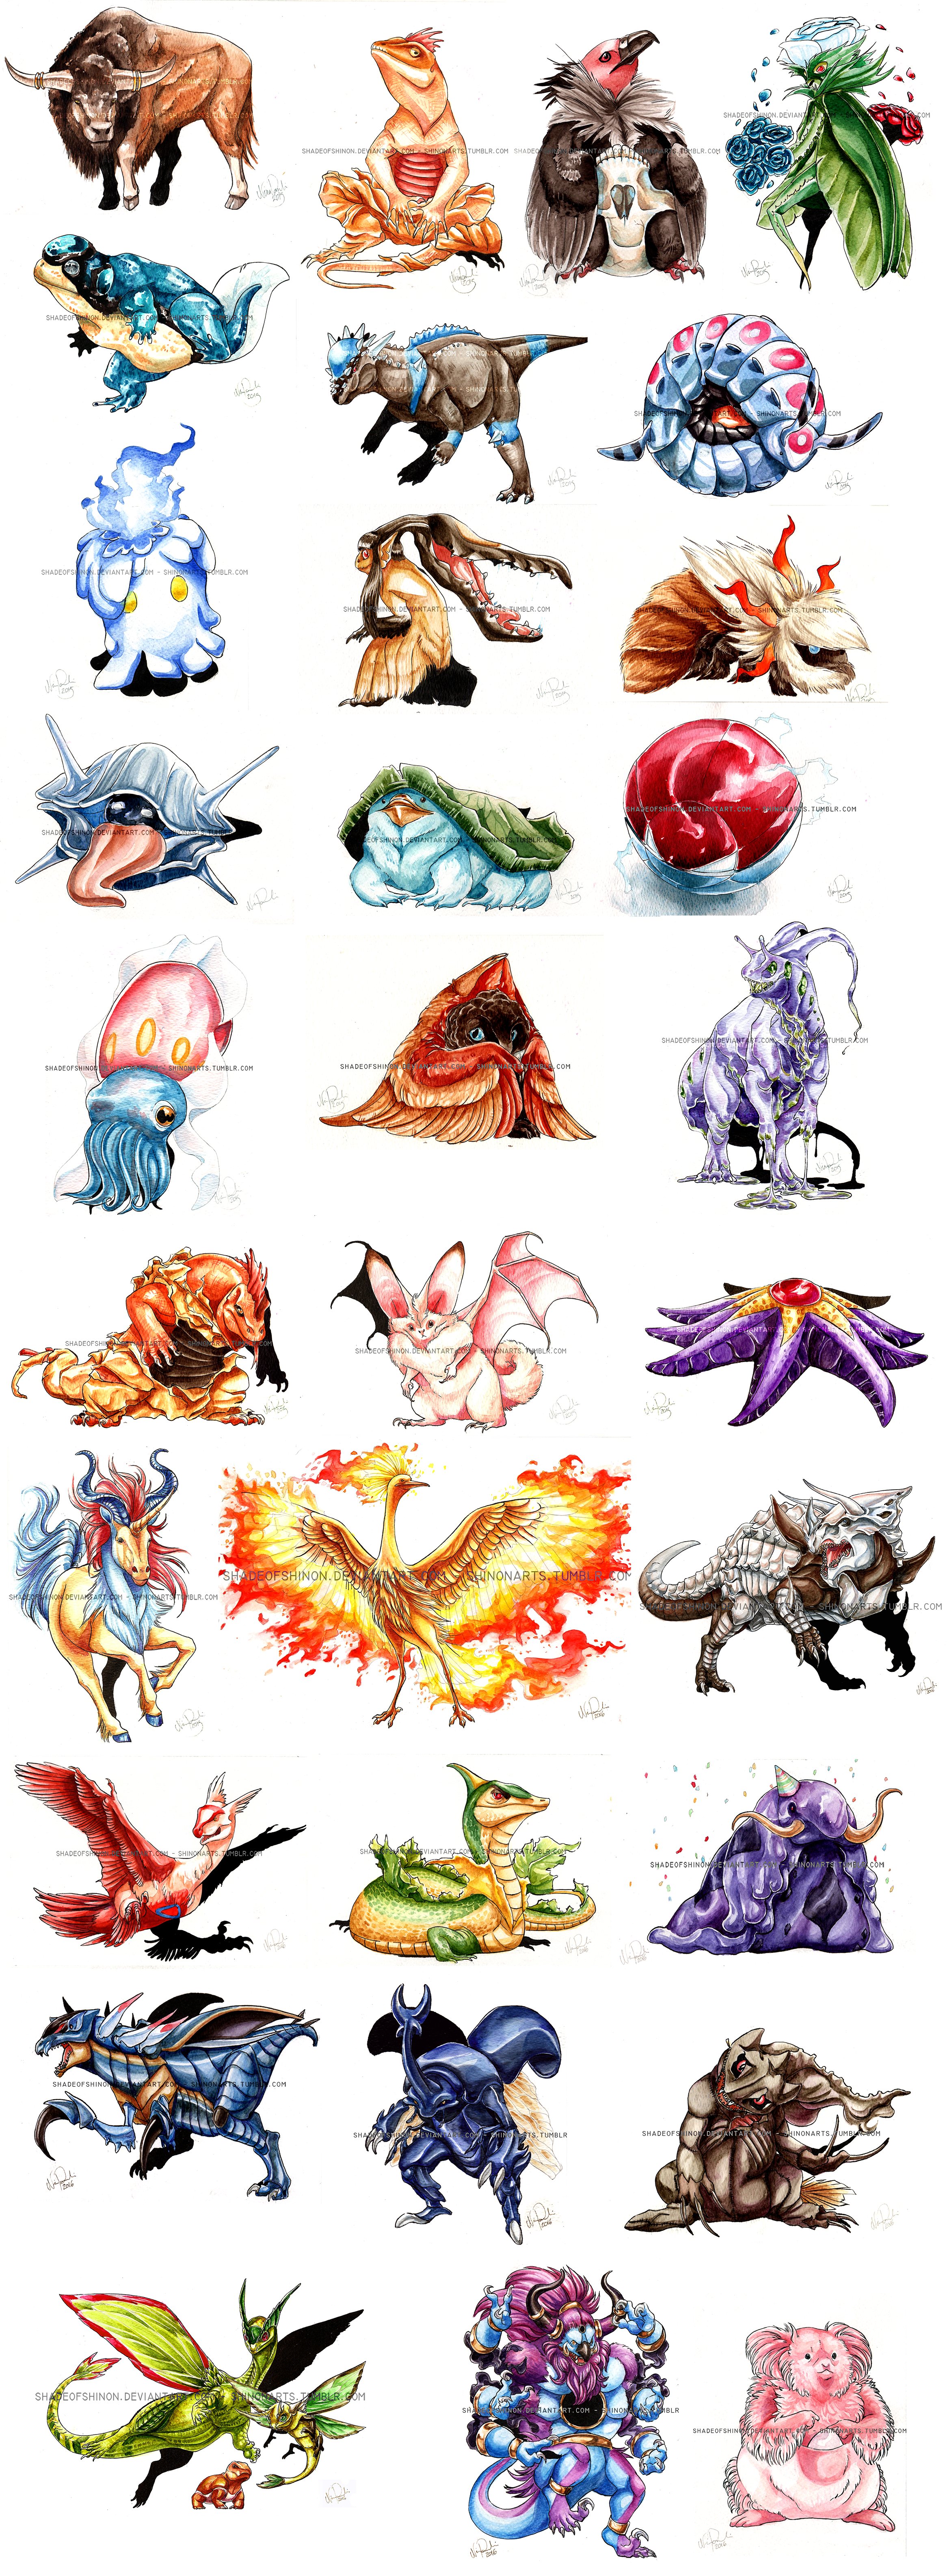 POKEDDEX 2015 RANDOMIZED - PAINTINGS FOR SALE by ShadeofShinon